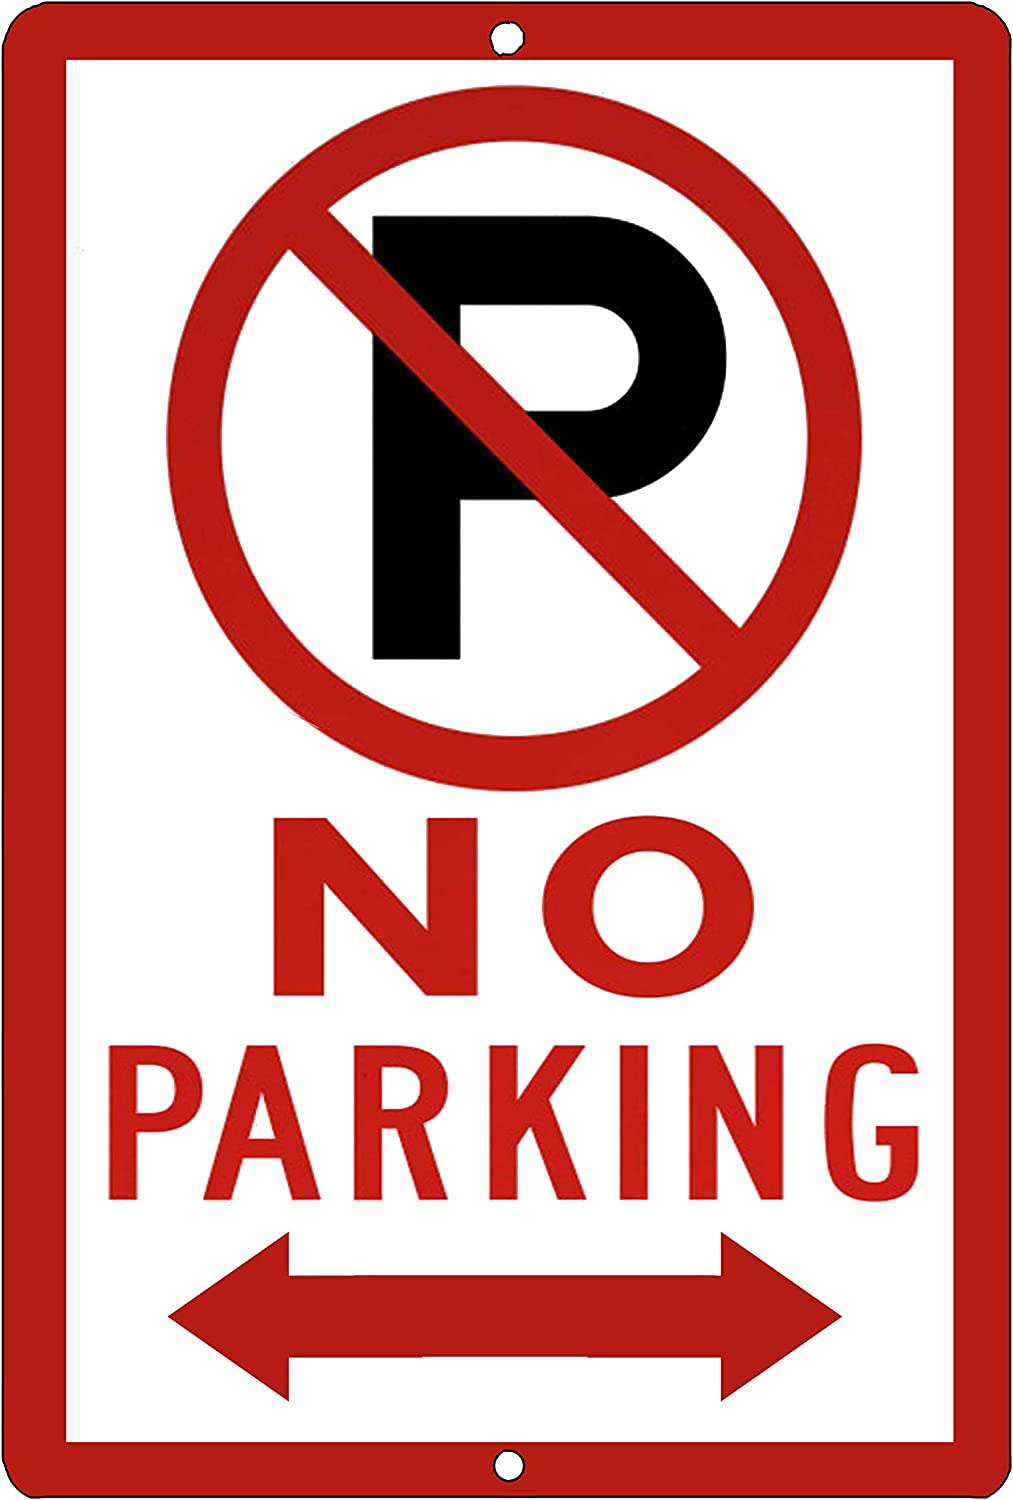 No Parking Arrow Metal Tin Sign Business Retail Store Home Large Restaurant Bar Office Hotel Parking Lot